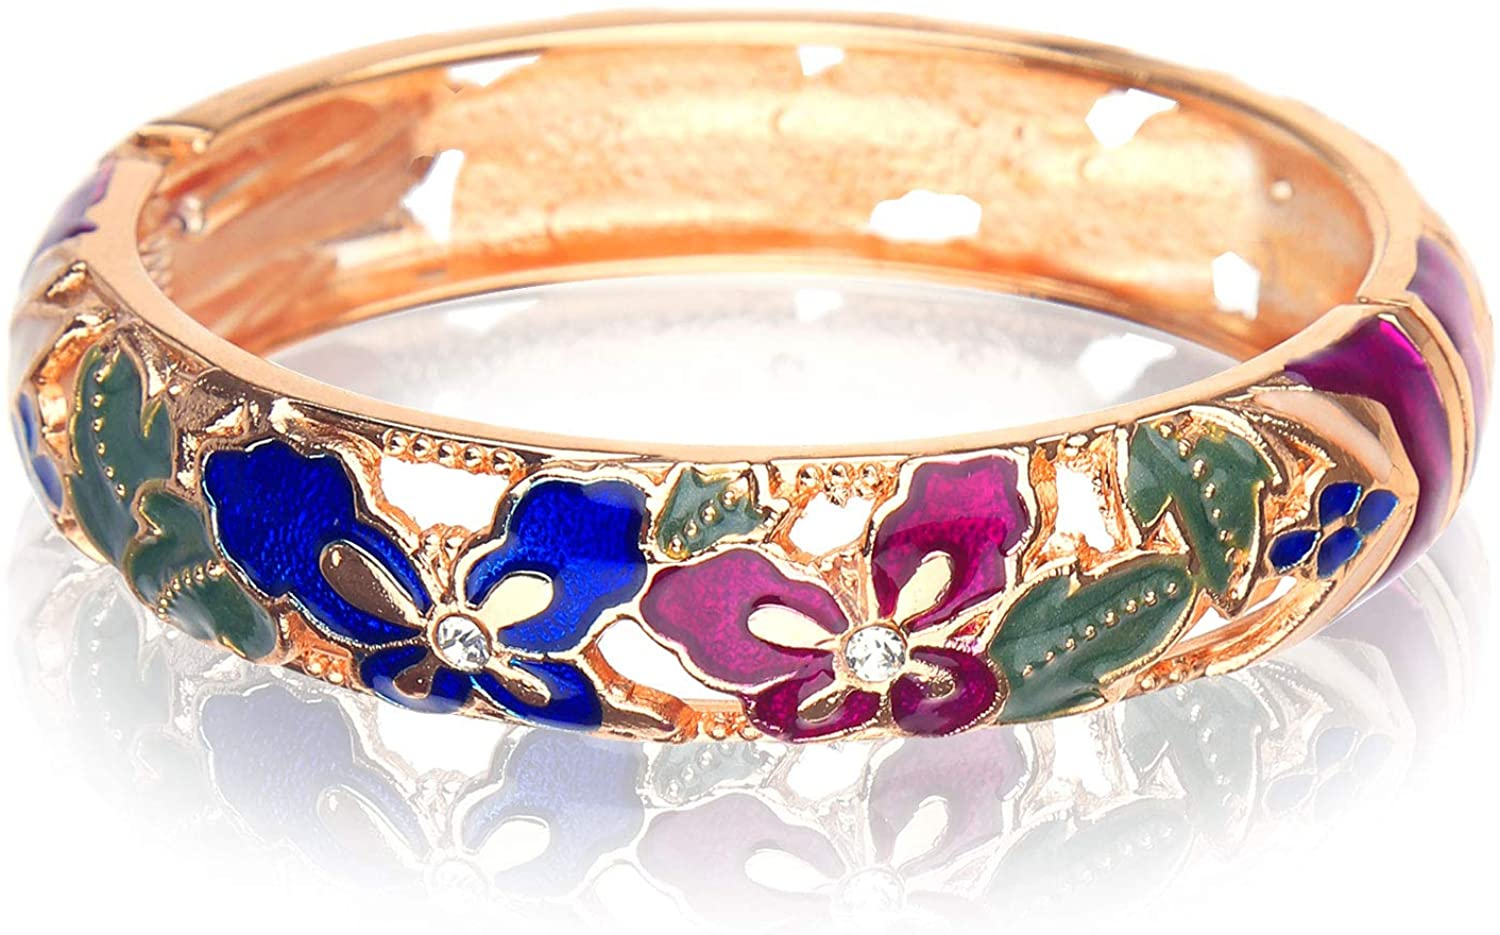 DOSBOO Butterfly Bangle Gold Hinge Indian Cuff Bracelets Enamel Jewelry Flower Craft With Gift Box